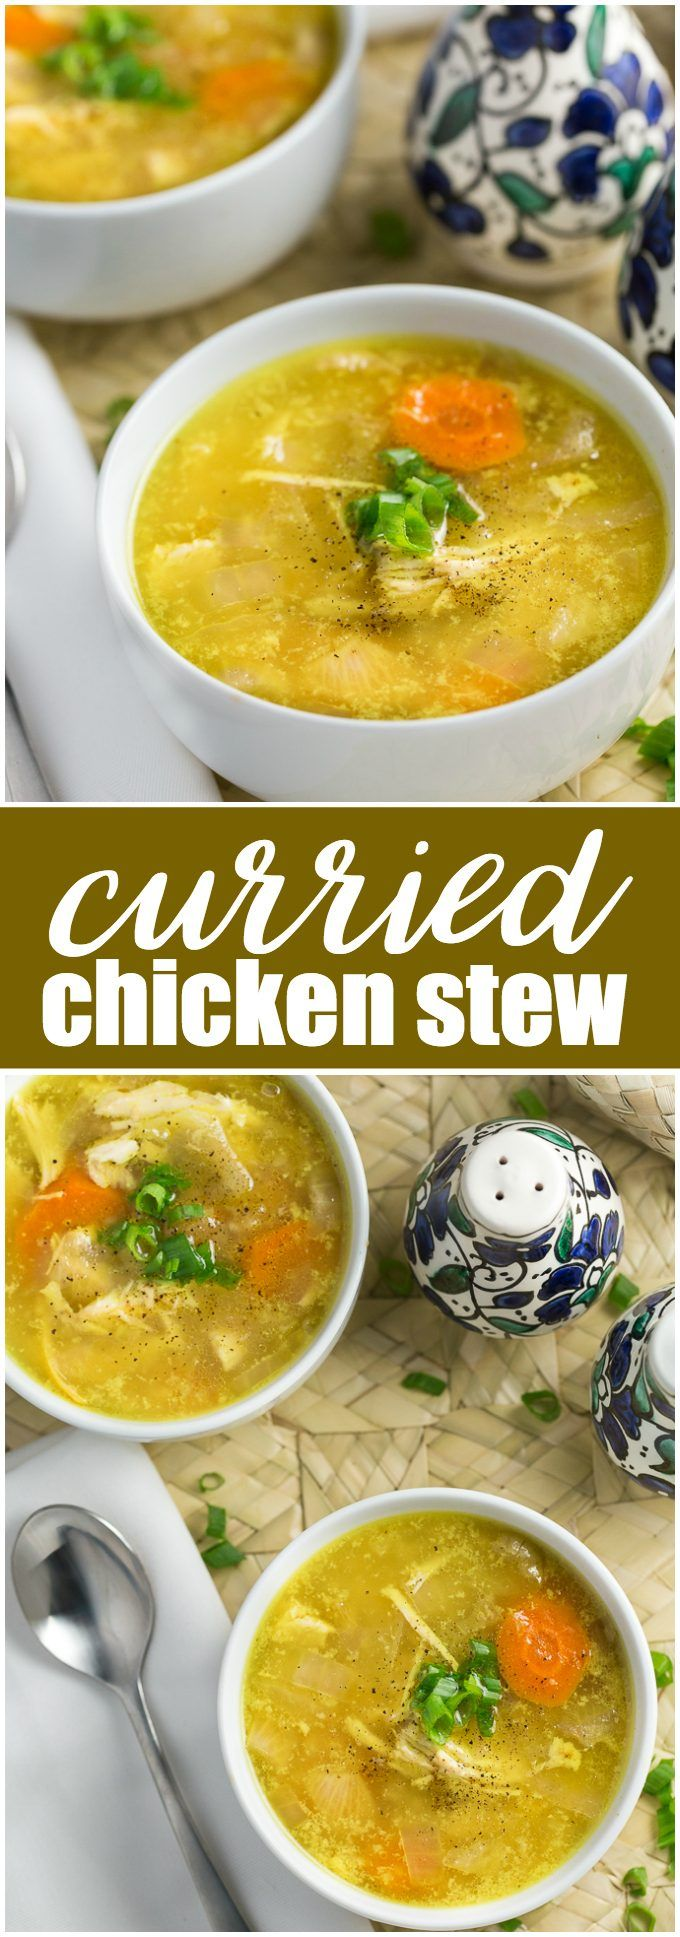 Curried Chicken Stew - delicious and low carb!